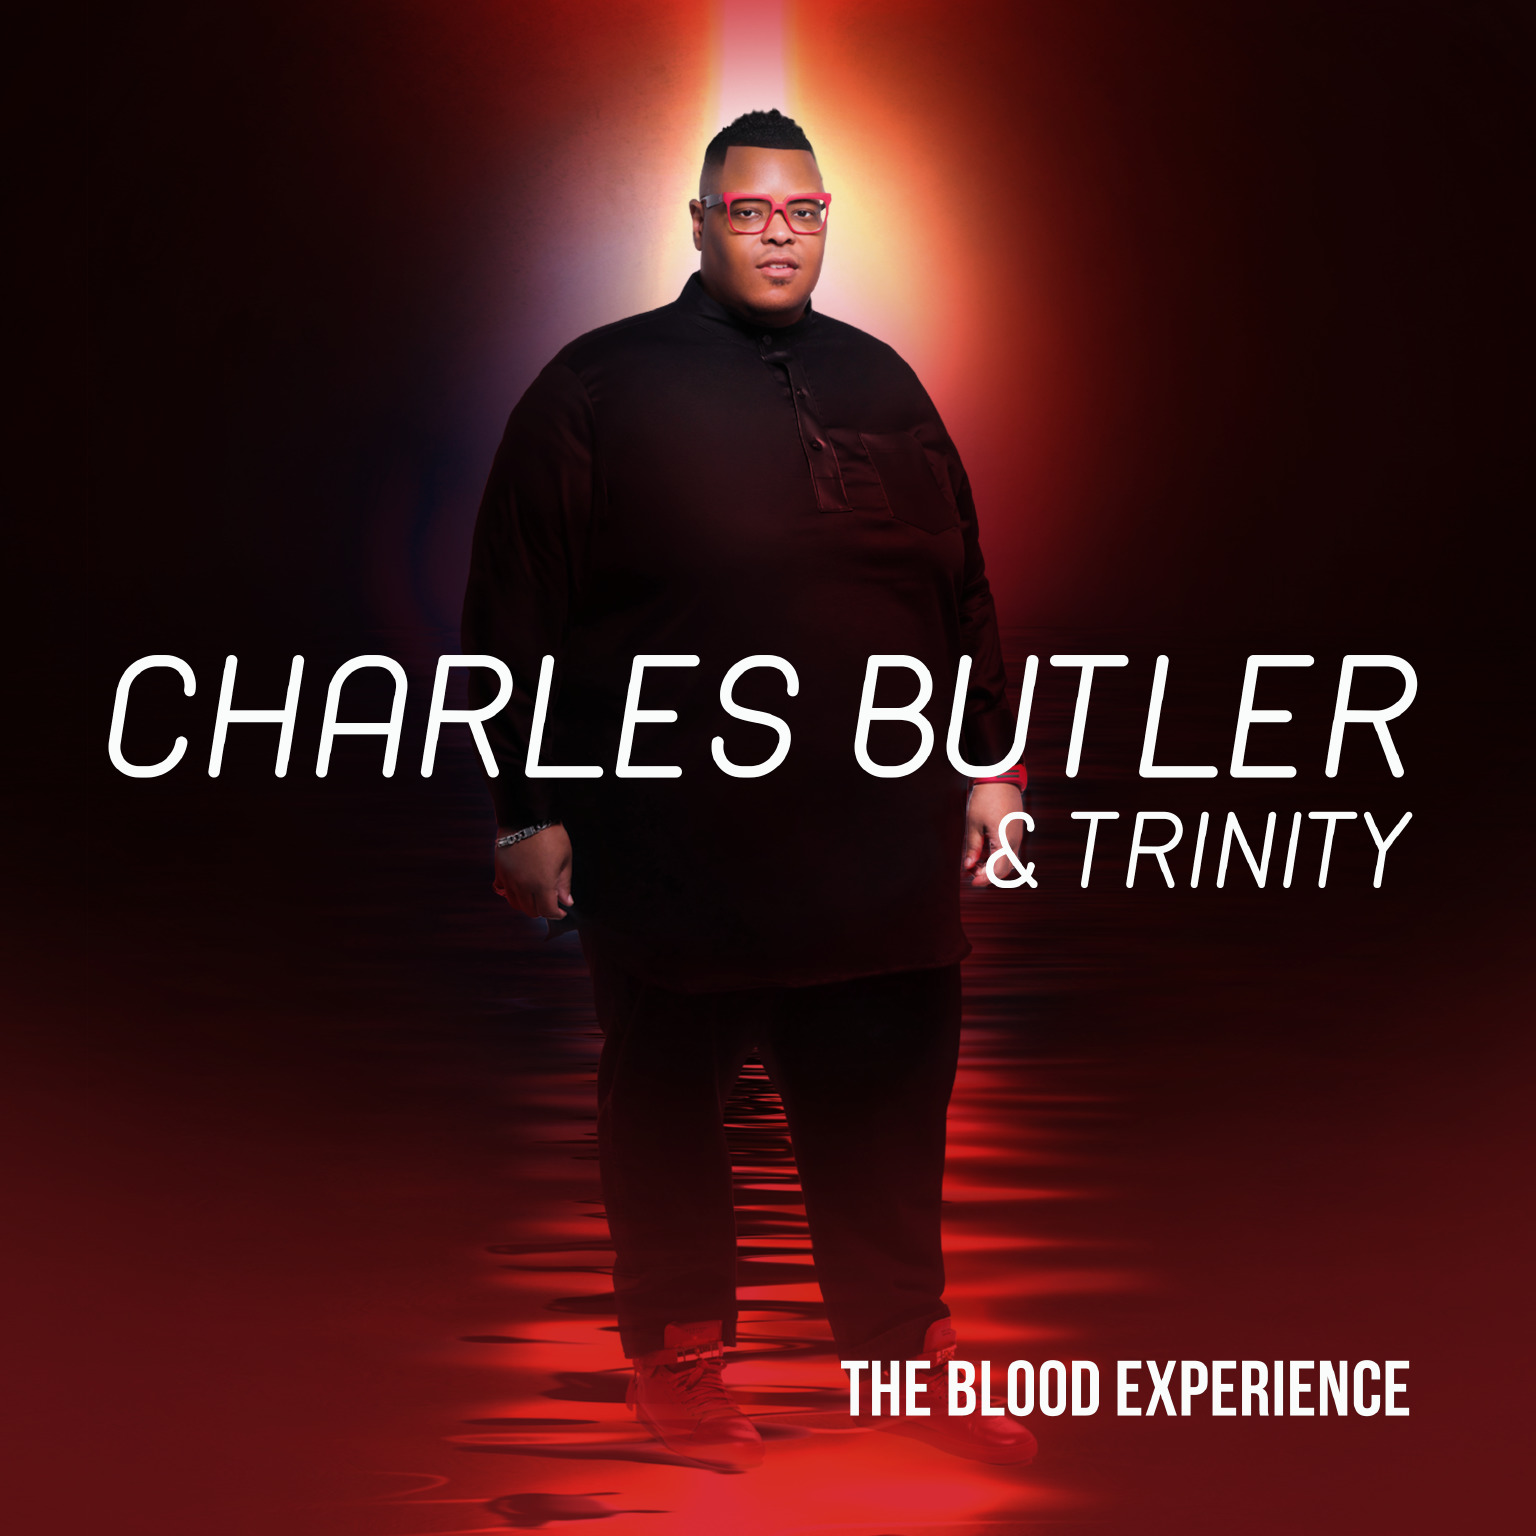 Charles Butler & Trinity debuts No. 2 on Billboard's Top Gospel Albums chart